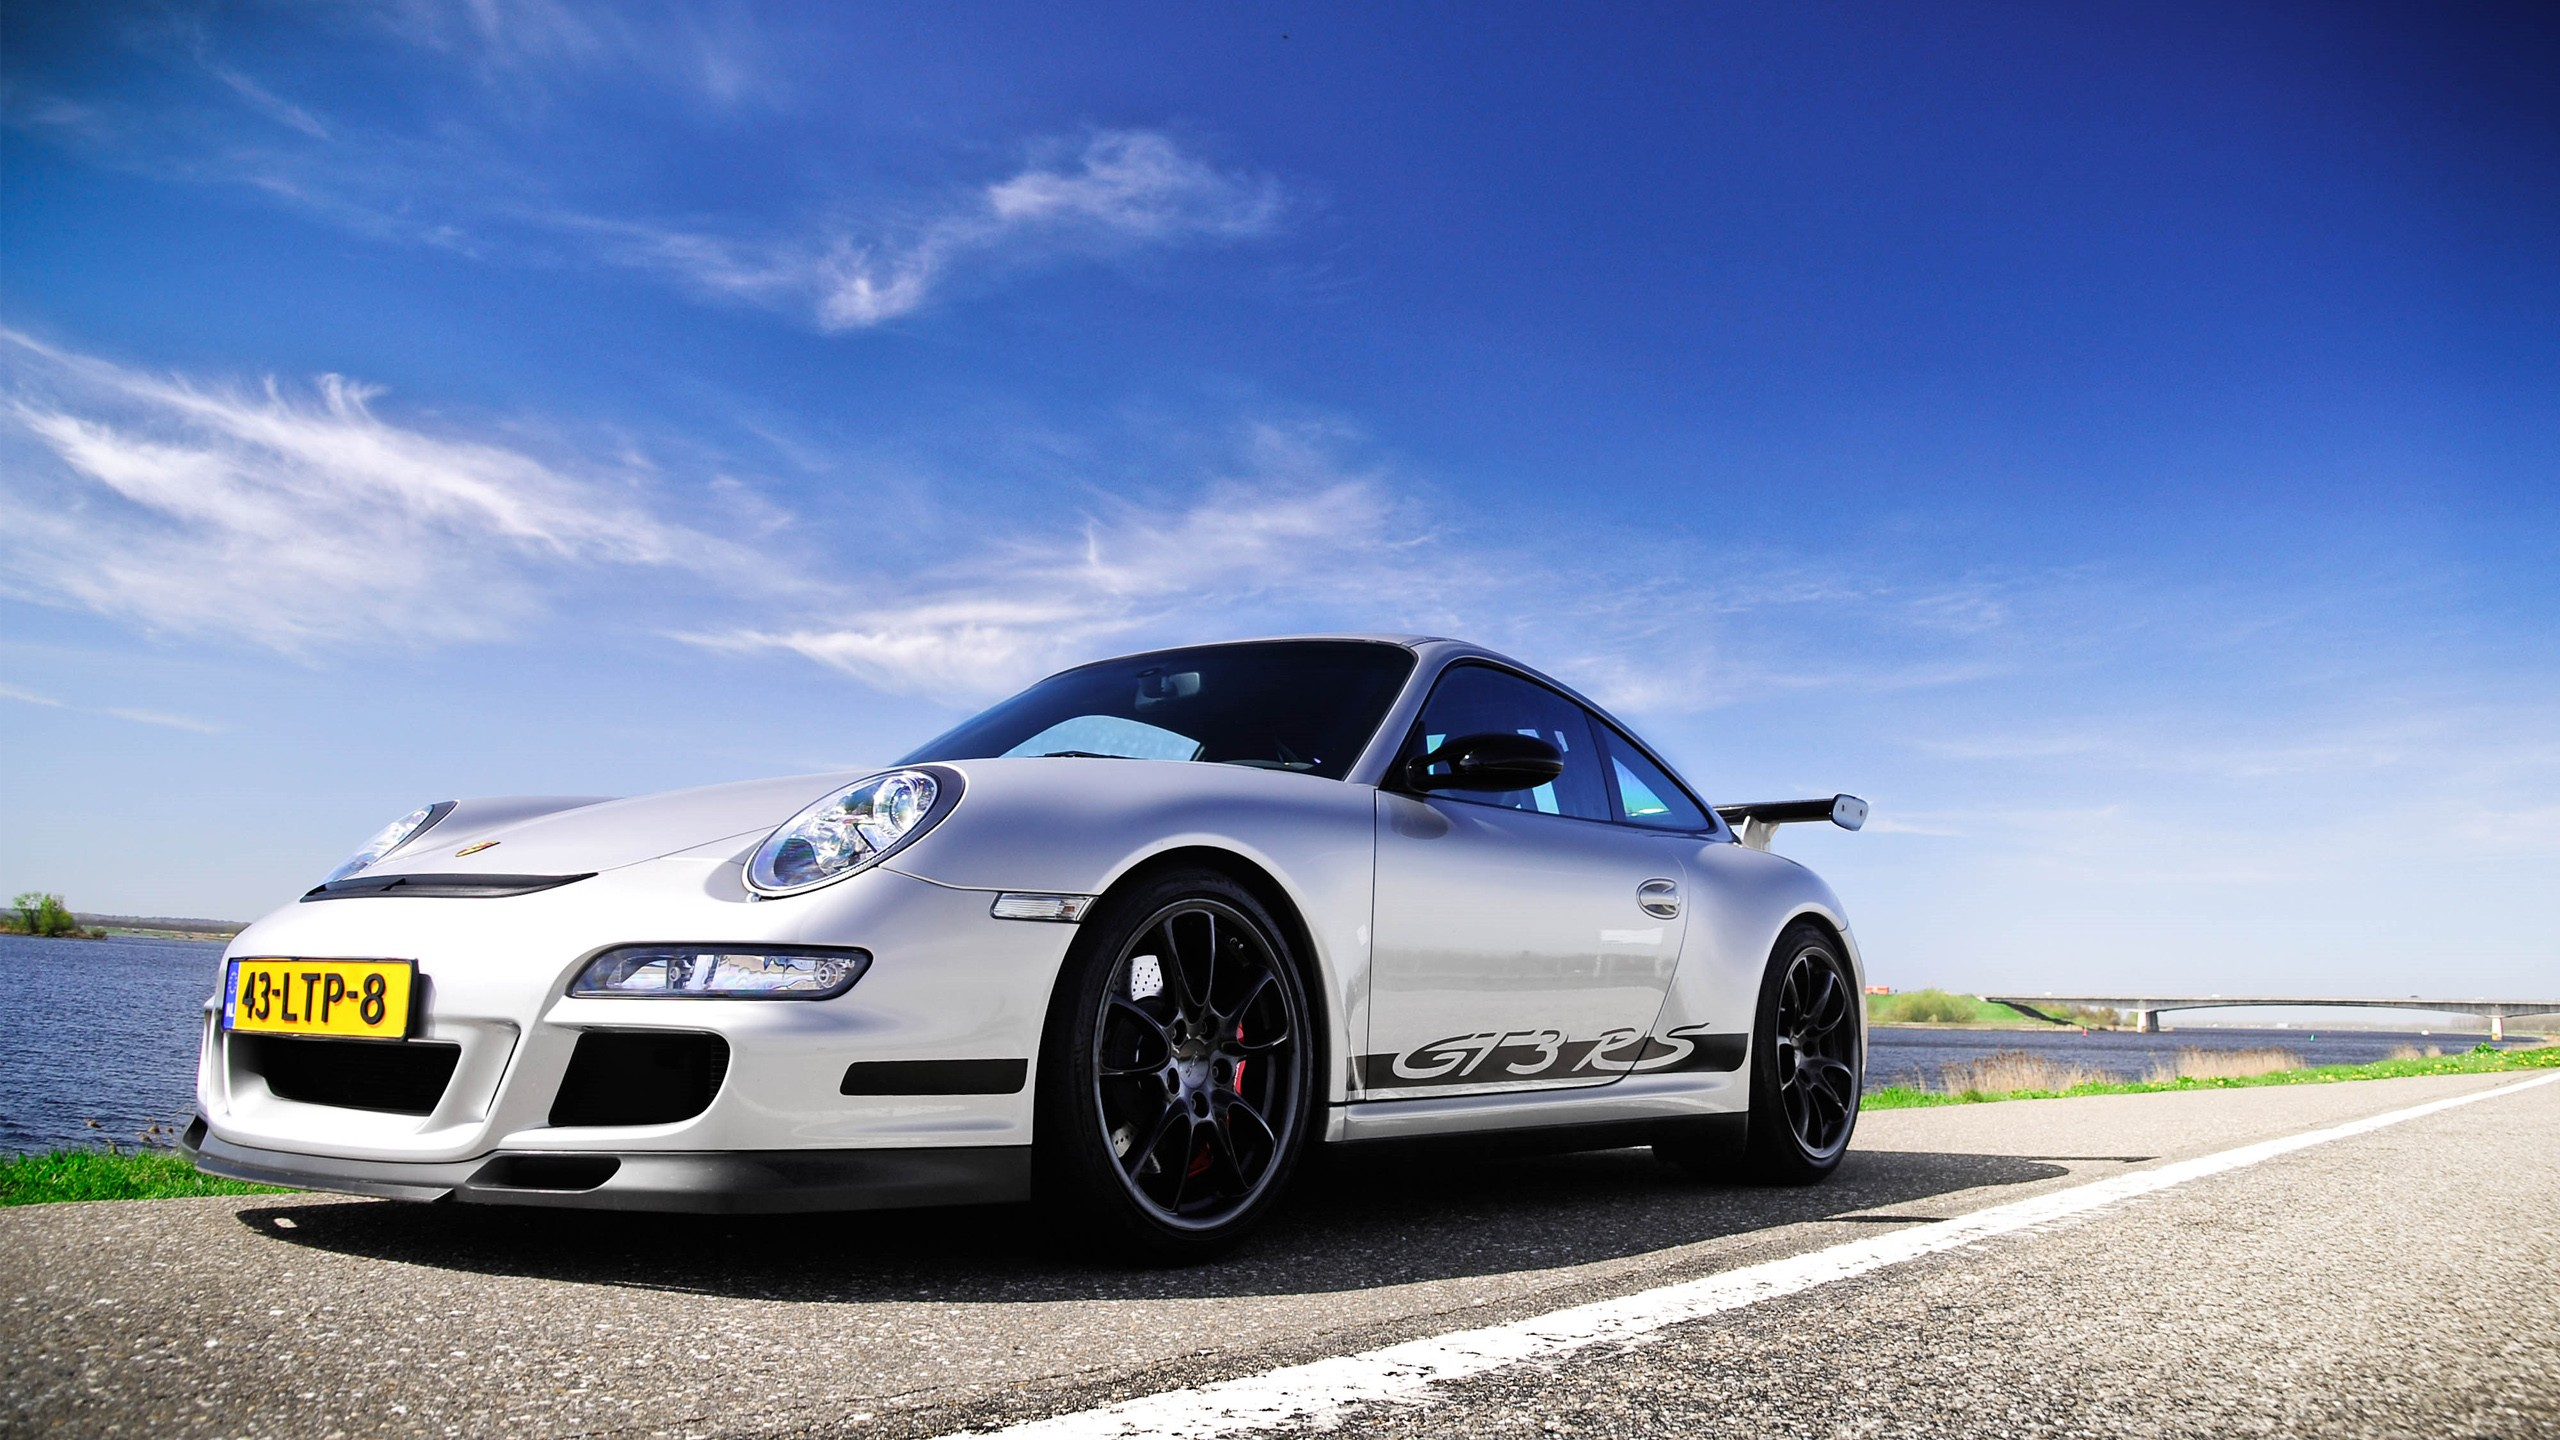 Porsche 997 Gt3 Rs Wallpaper Hd Car Wallpapers Id 4334